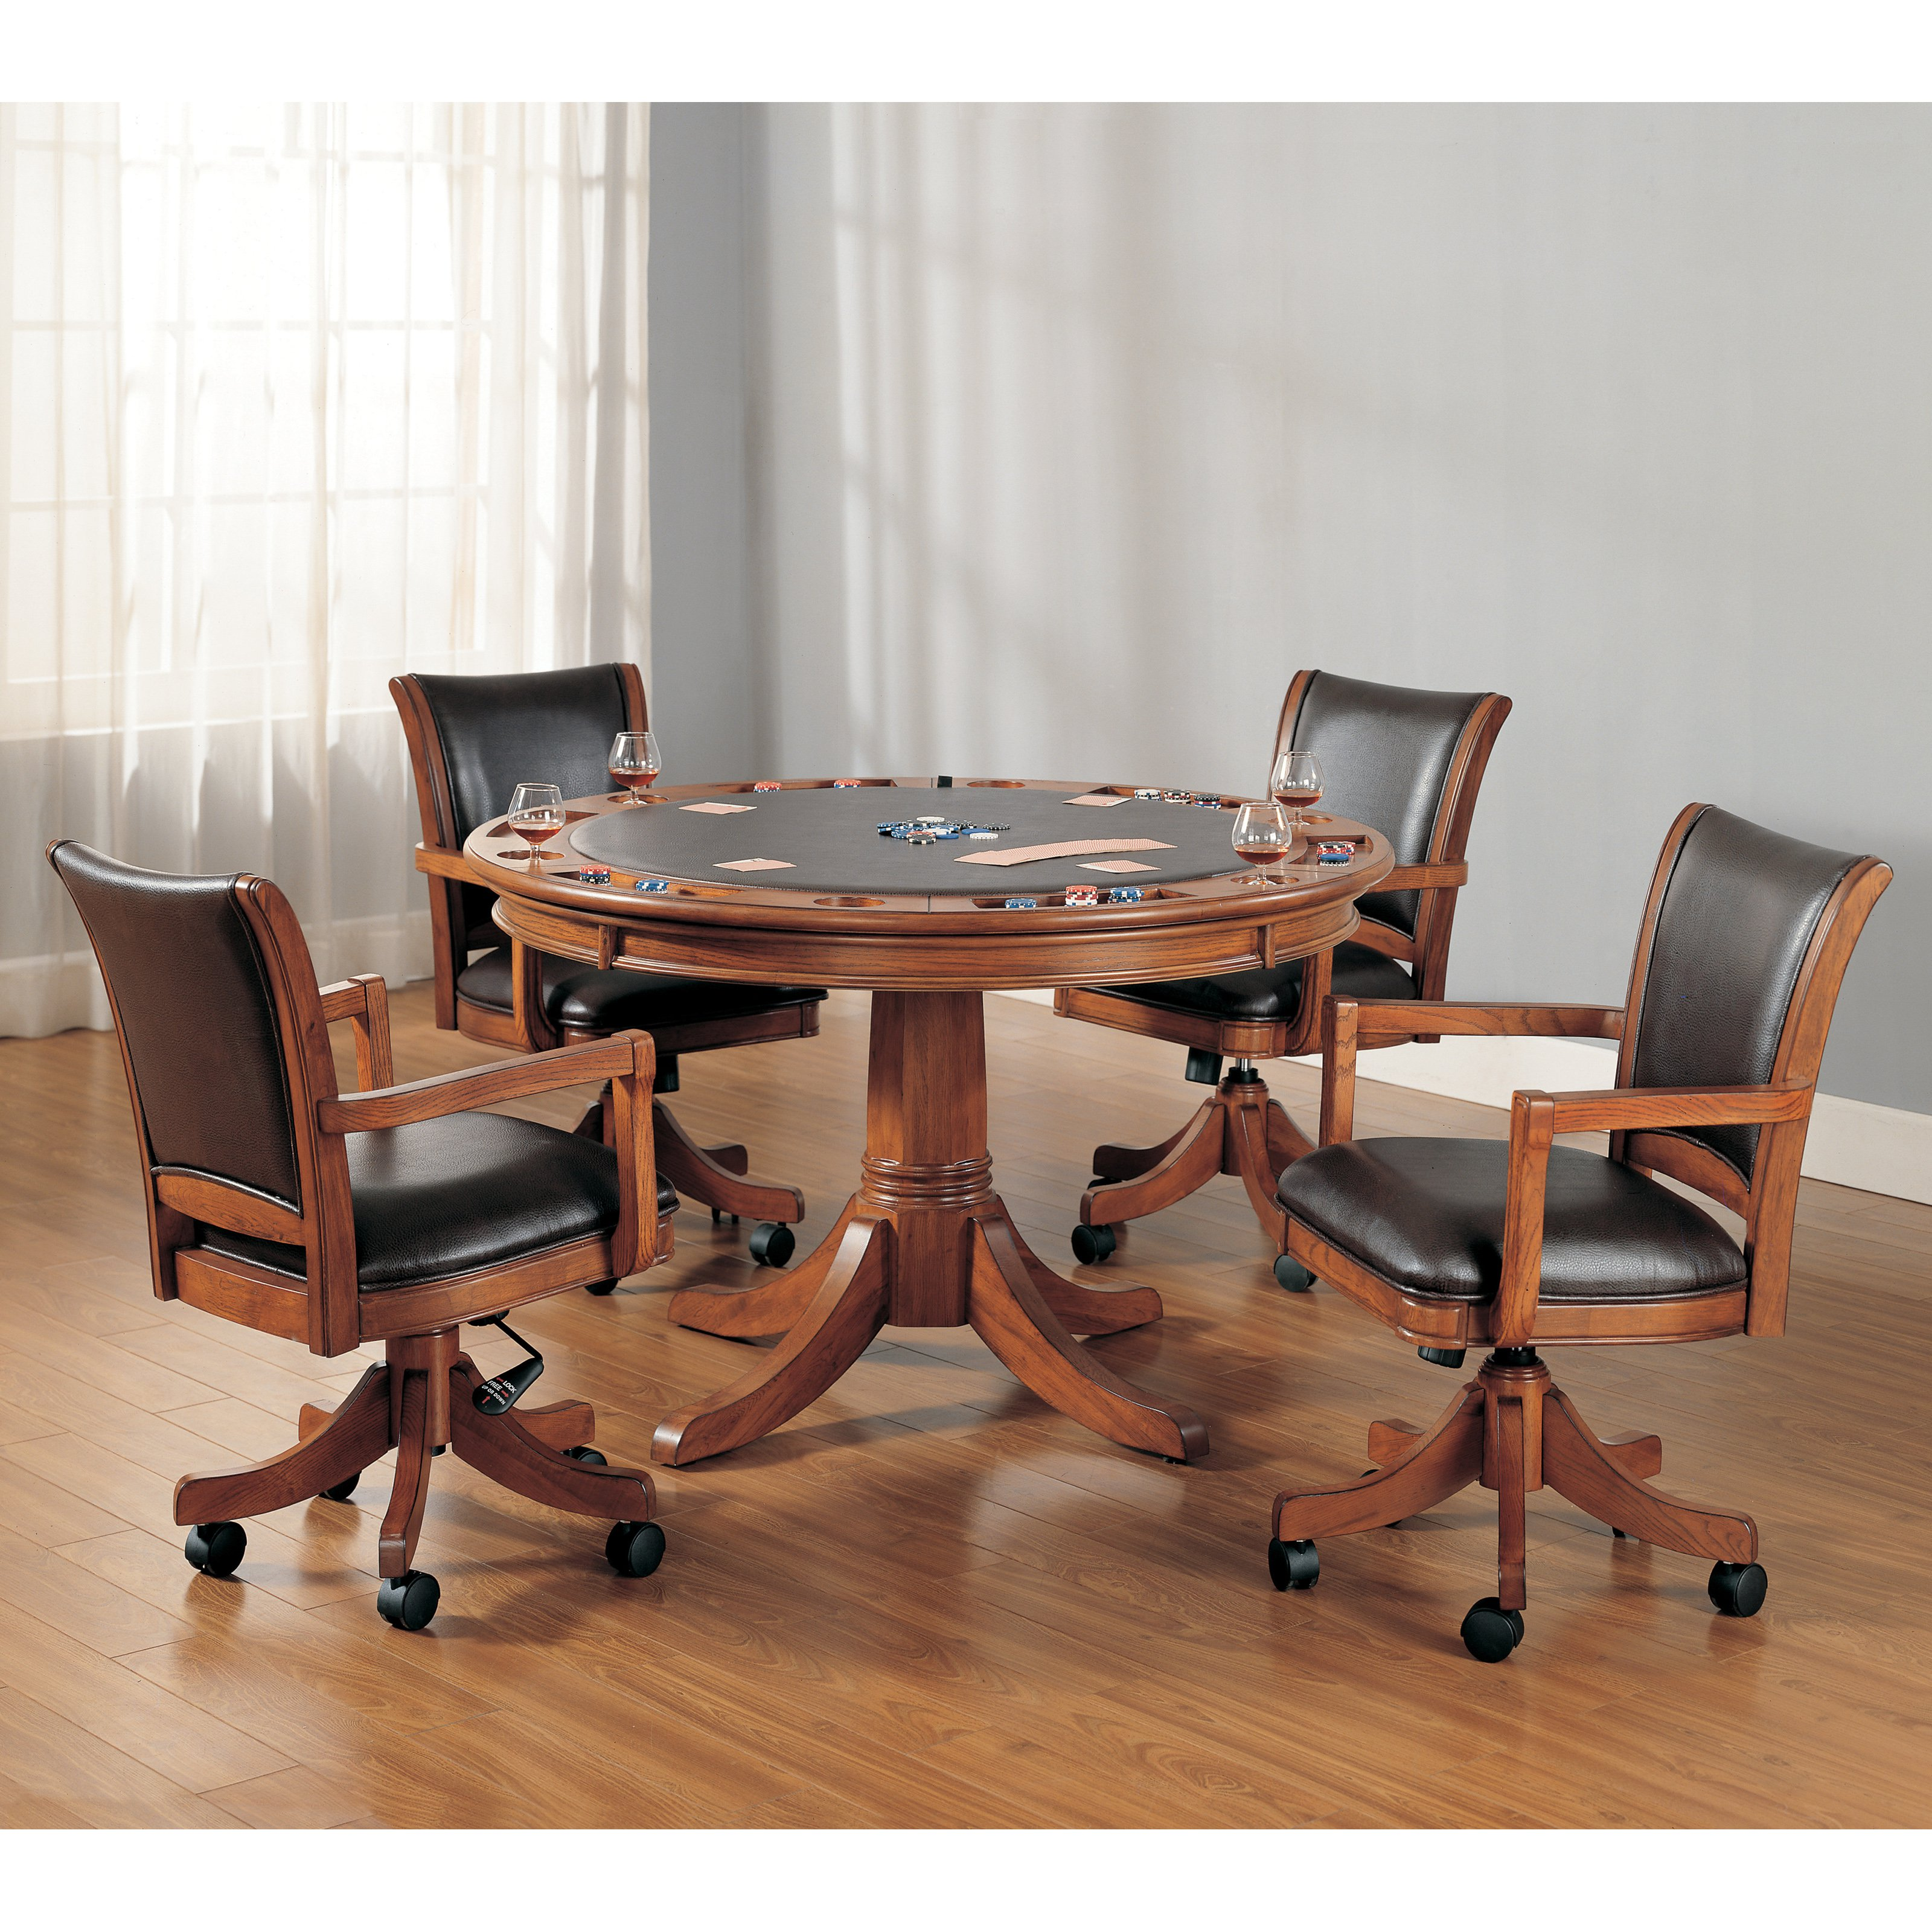 Hillsdale Park View 5 Piece Game Table Set by Hillsdale